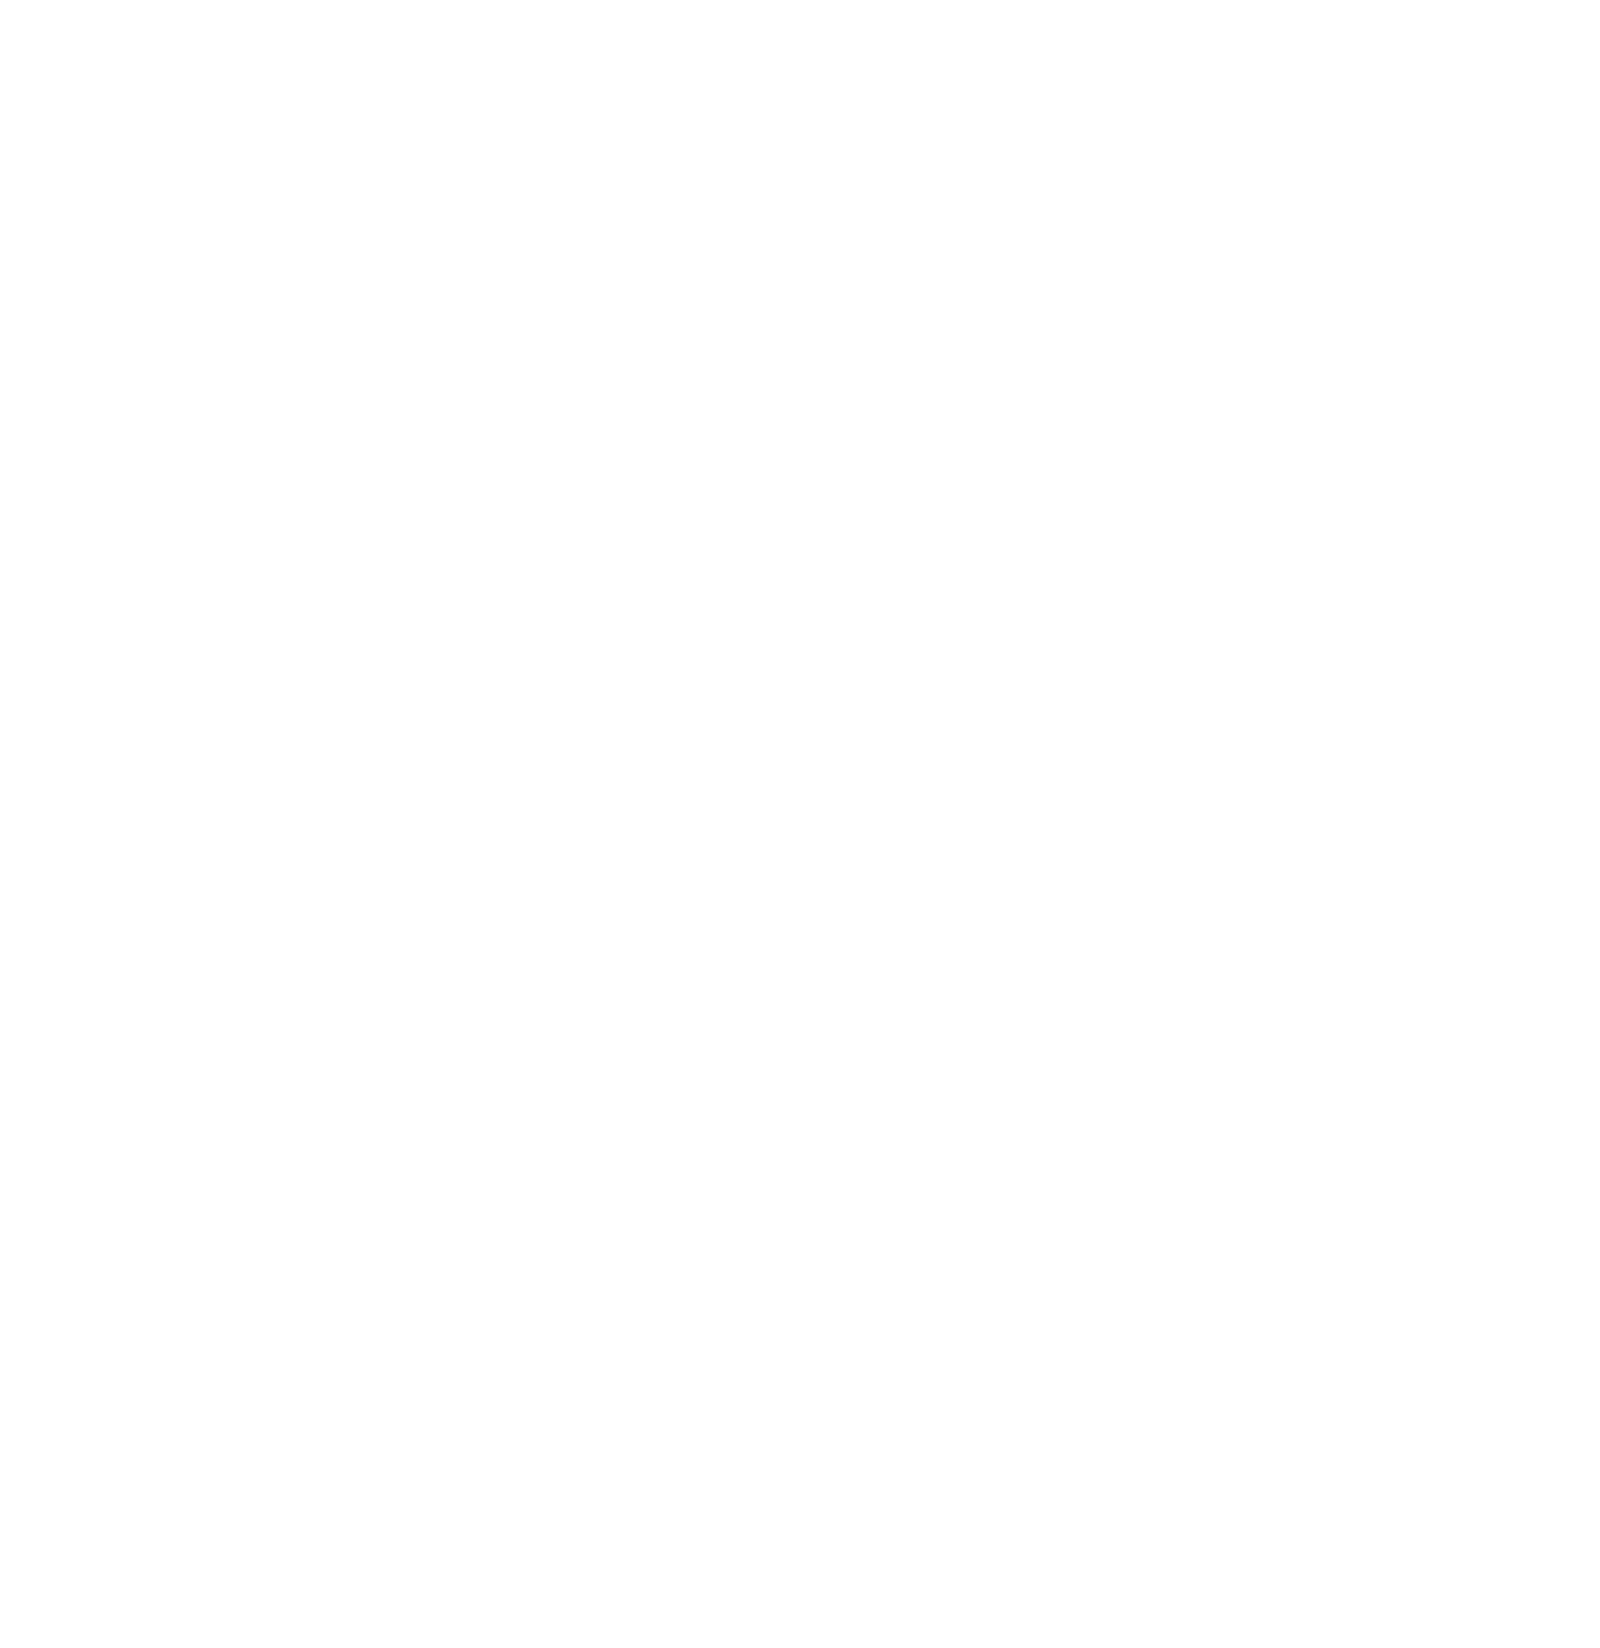 Logiquali, Consulting & Creativity. 06-60-16-17-85